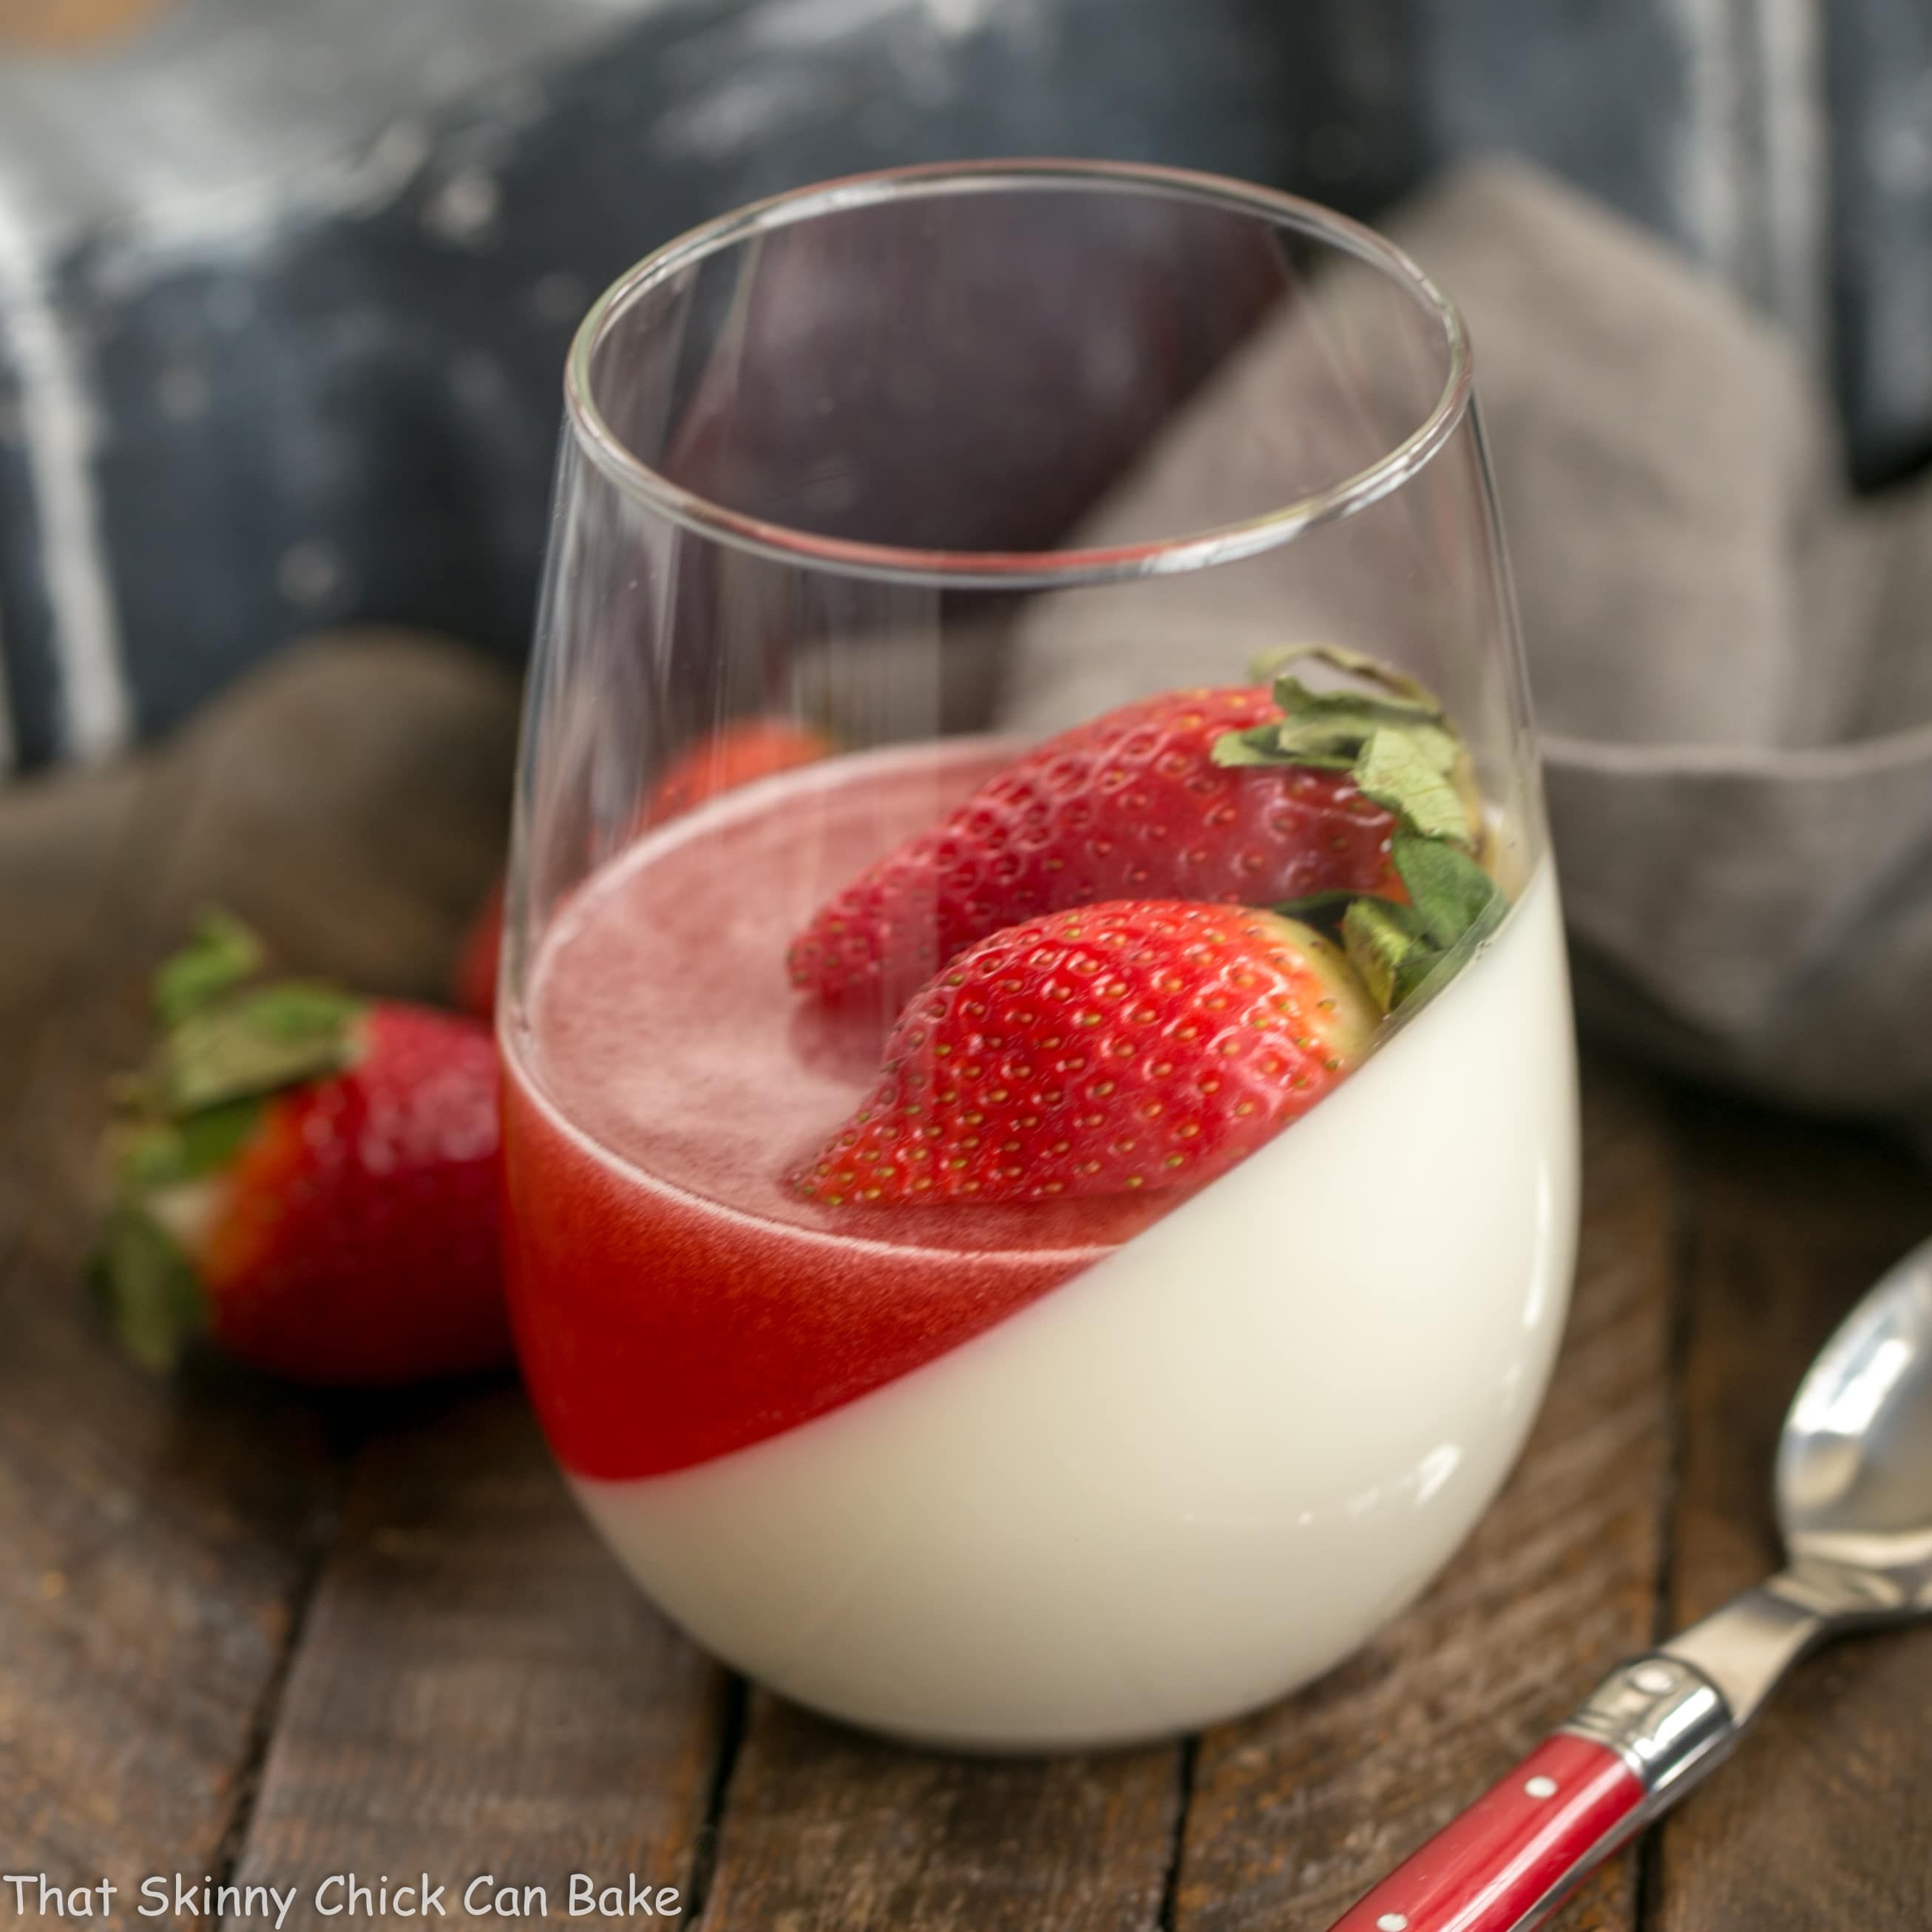 Pin By Anna Nahajewski On Desserts And Fun Treats Strawberry Panna Cotta Vanilla Panna Cotta Strawberry Panna Cotta Recipe